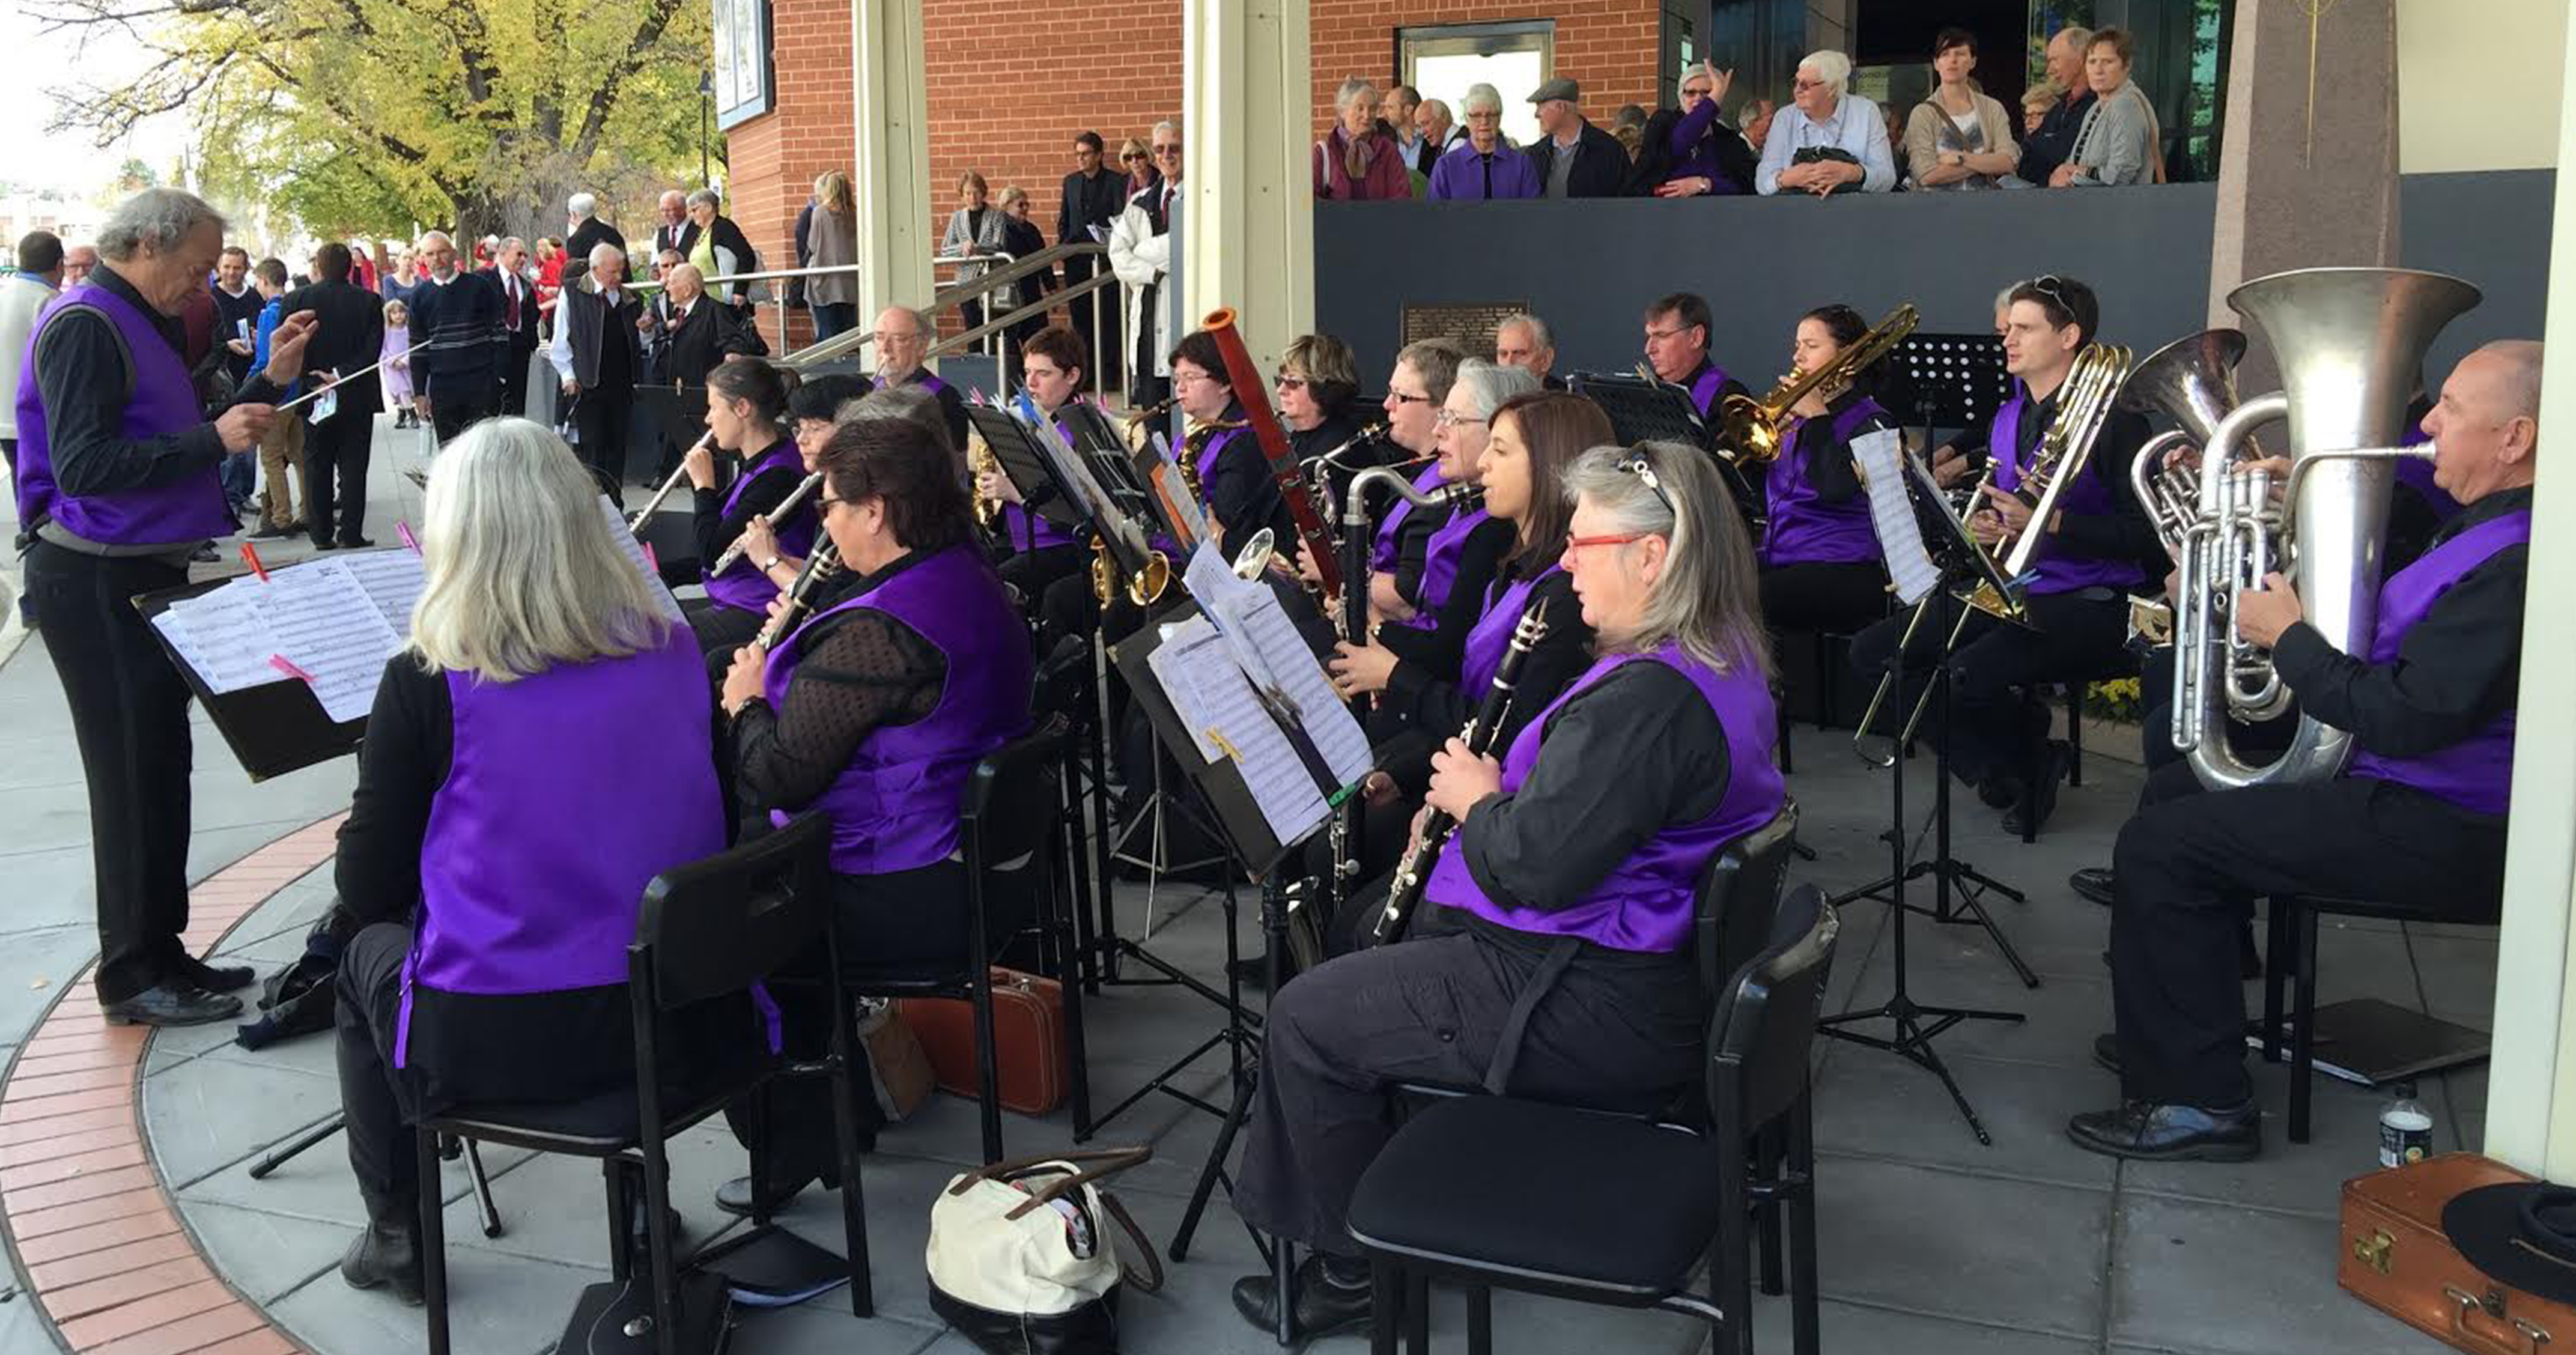 Bathurst City and RSL Band